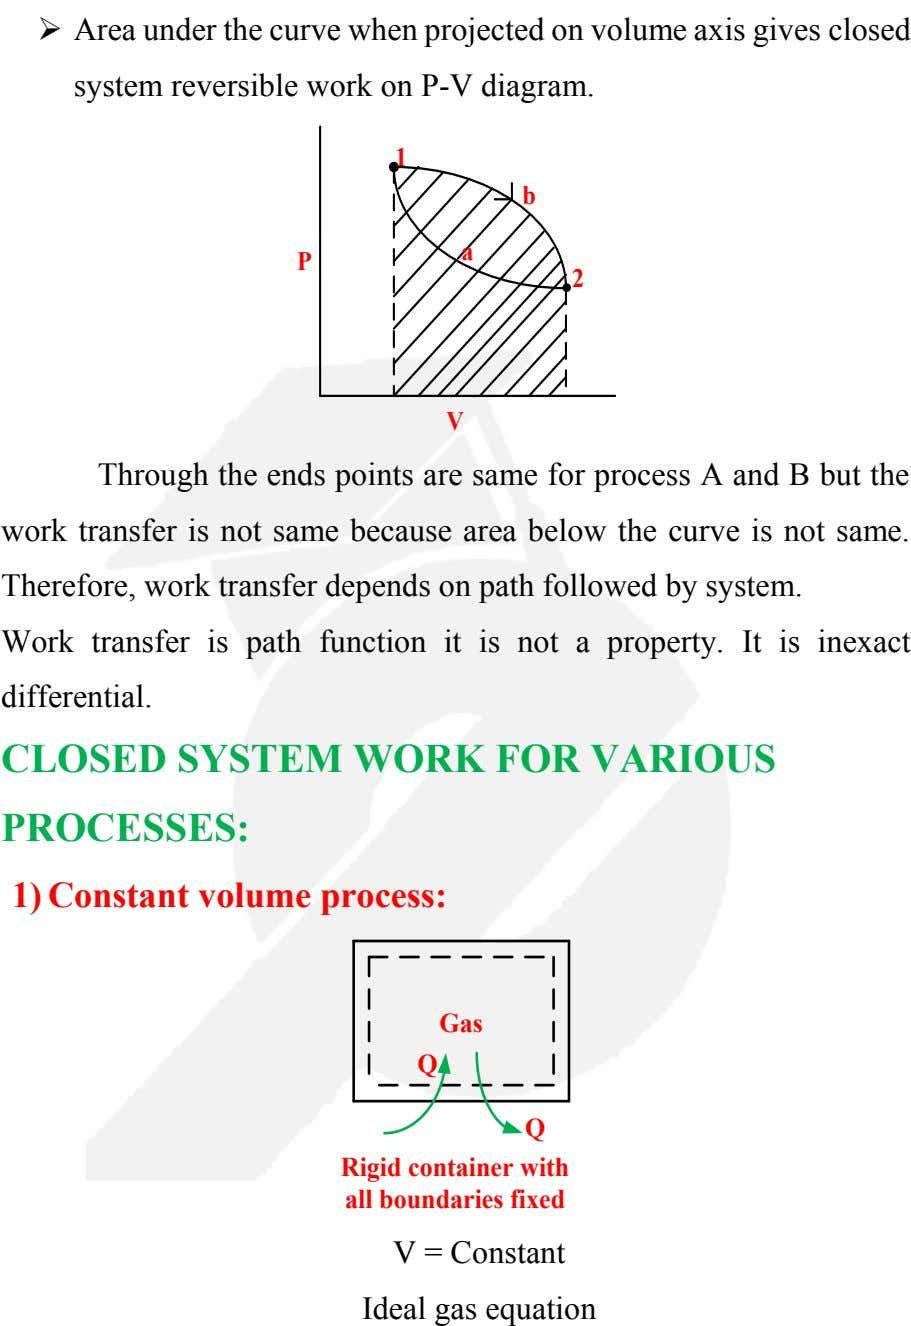  Area under the curve when projected on volume axis gives closed system reversible work